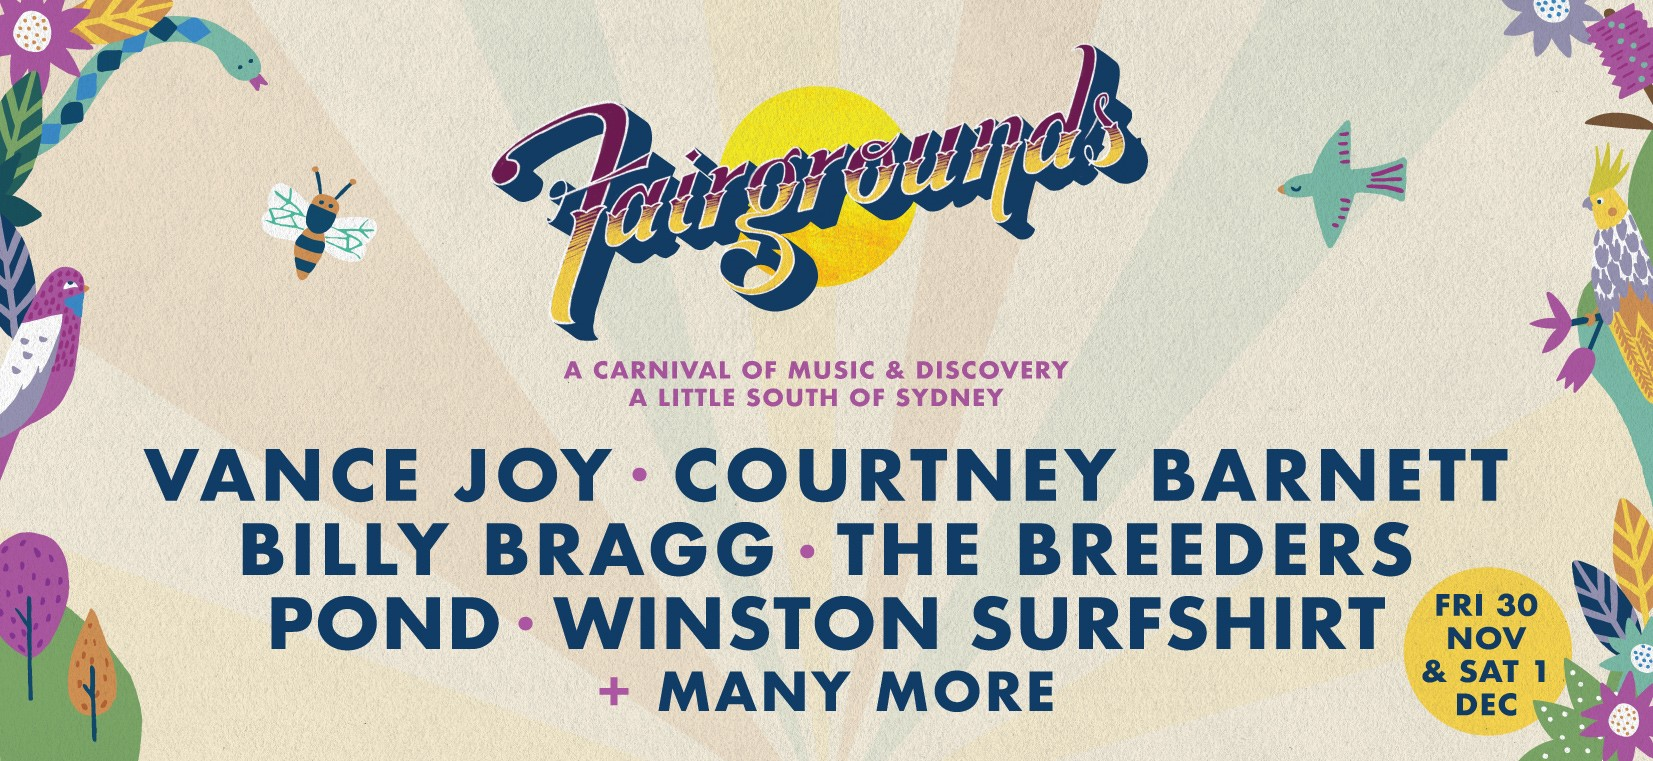 Vance Joy, Courtney Barnett, Pond and Winston Surfshirt headline Fairgrounds Festival 2018